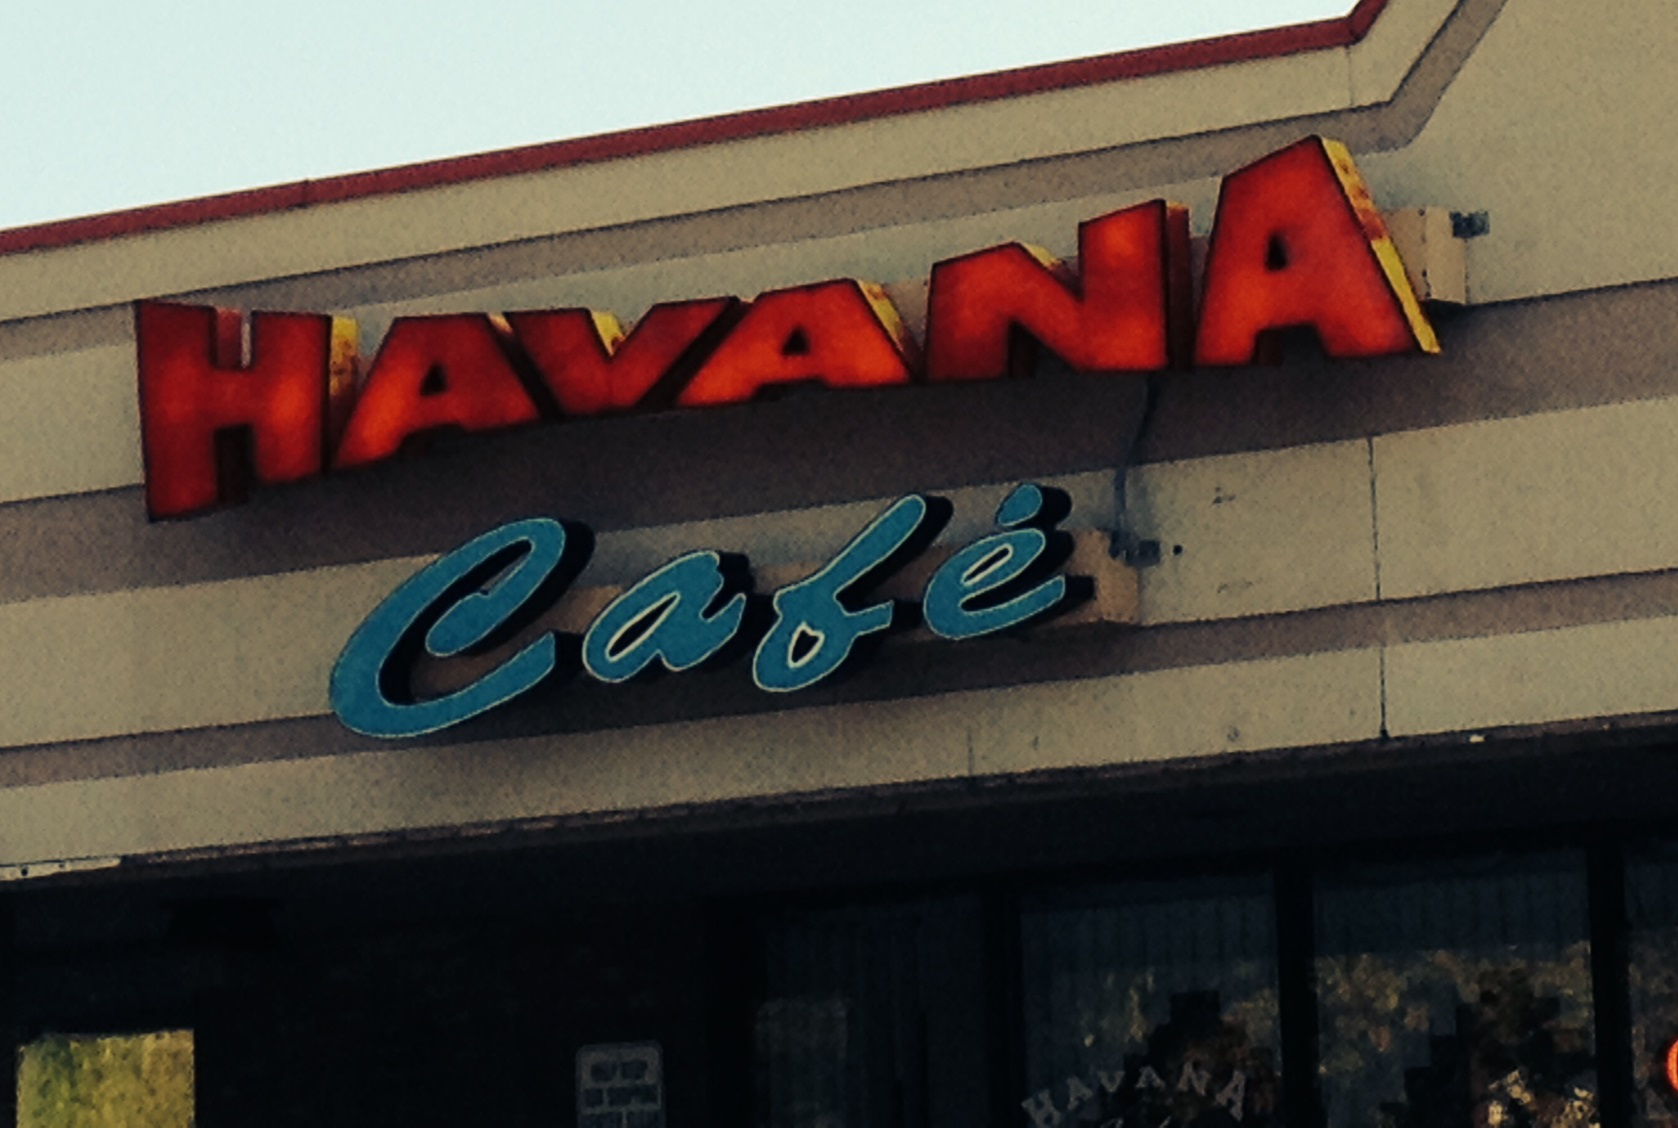 Havana Cafe Restaurant Review